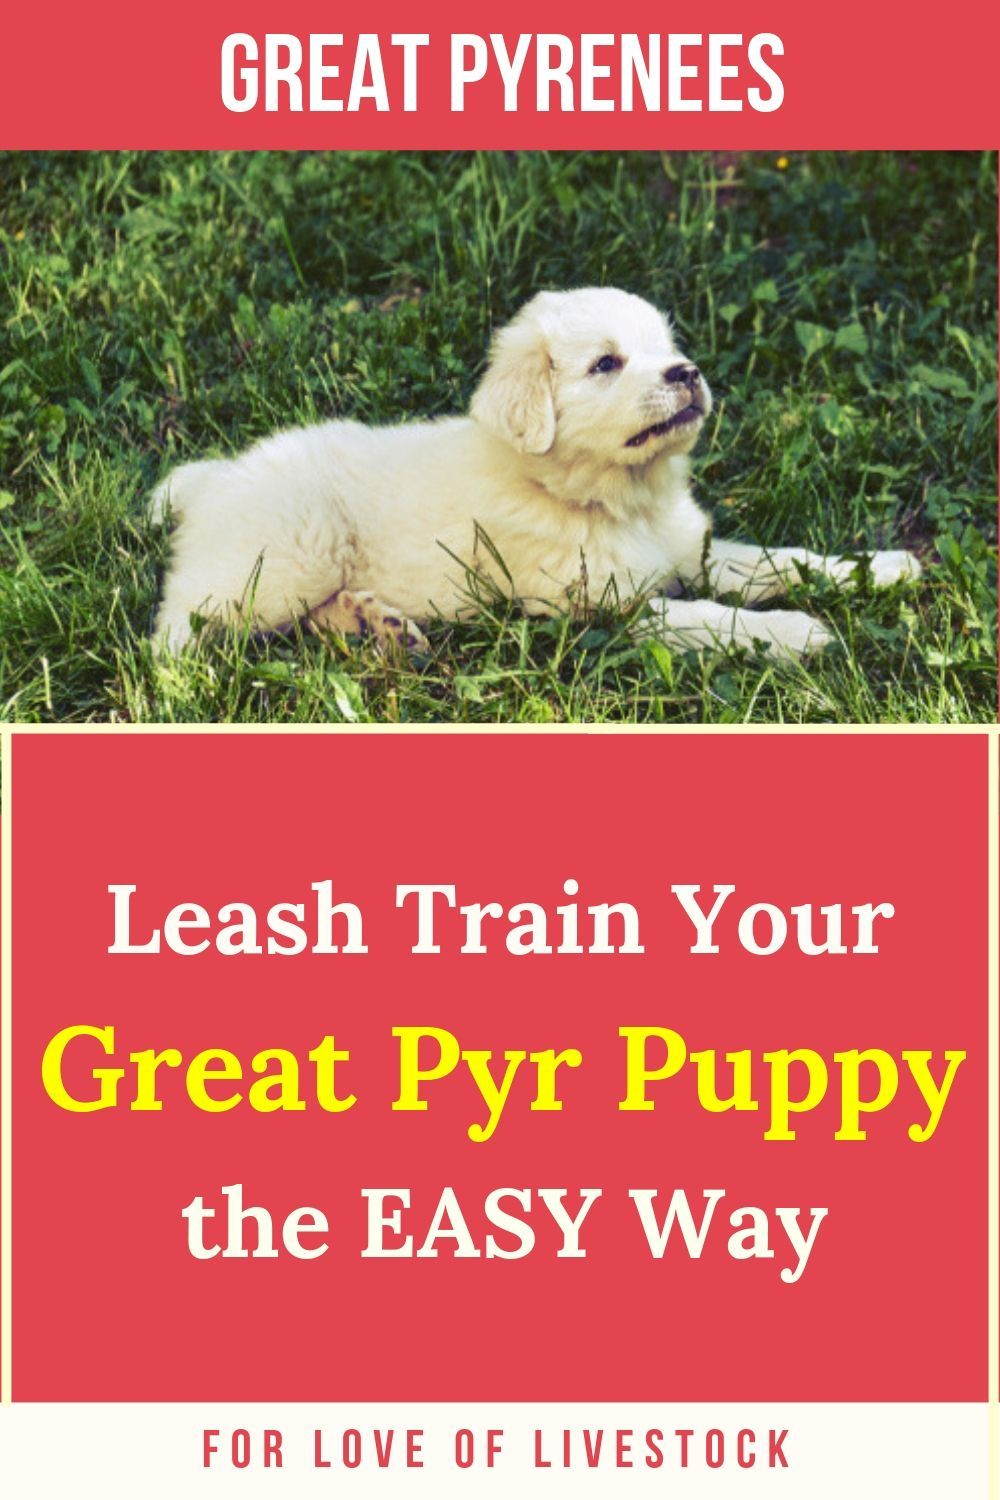 Leash train your great pyr puppy the easy way great